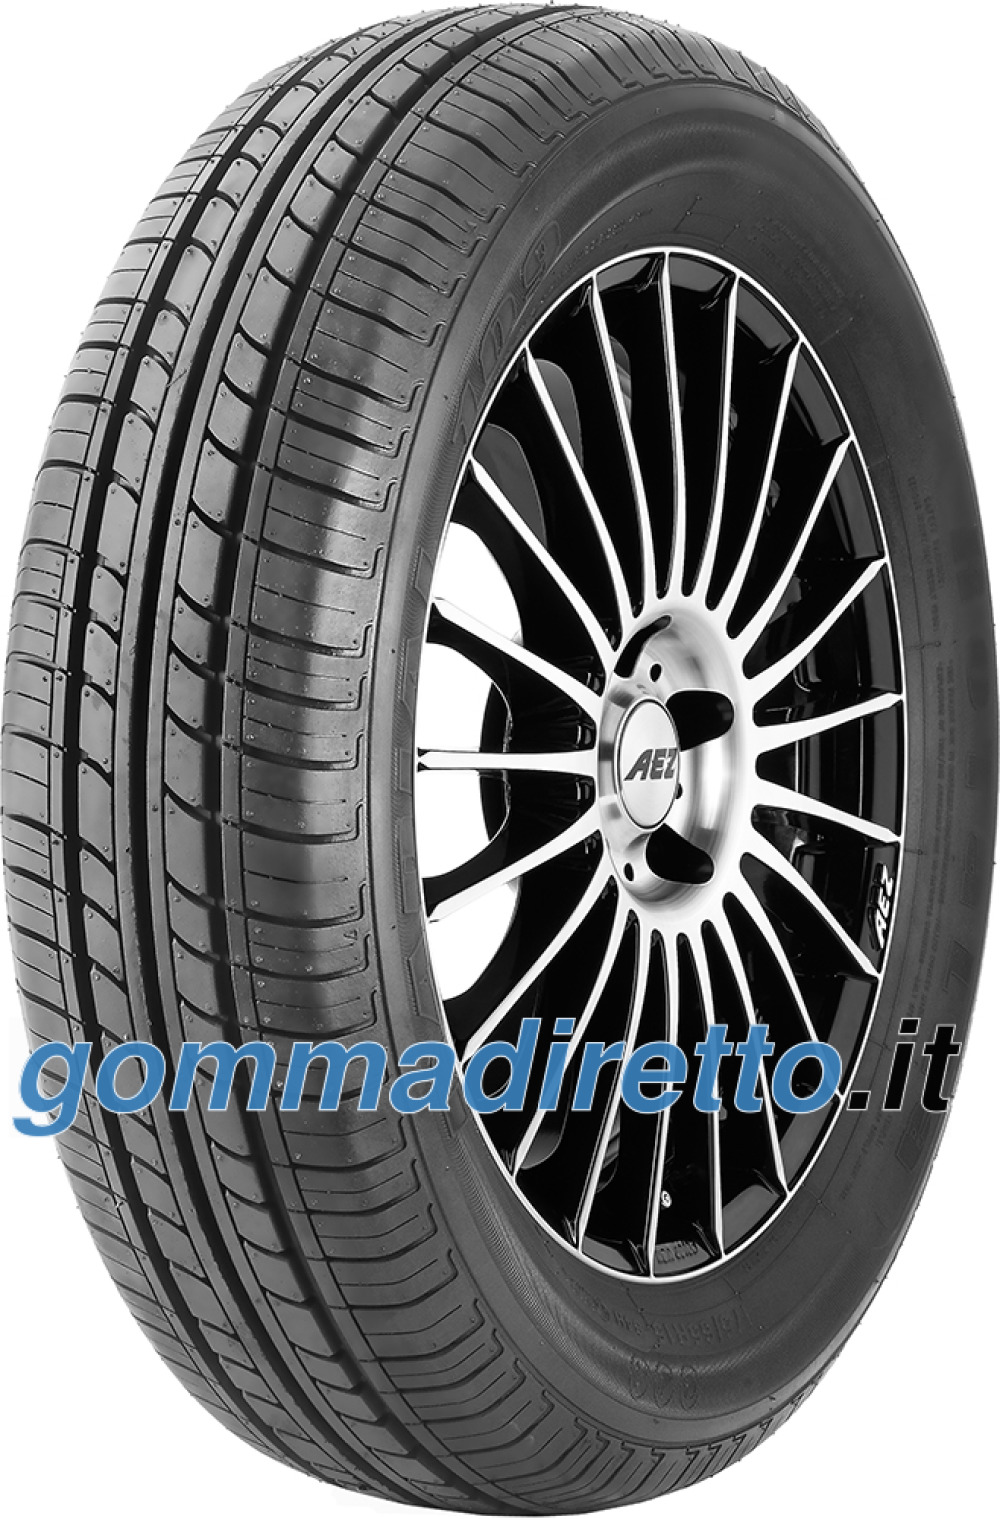 Image of Rotalla Radial 109 ( 145/70 R12 69T )